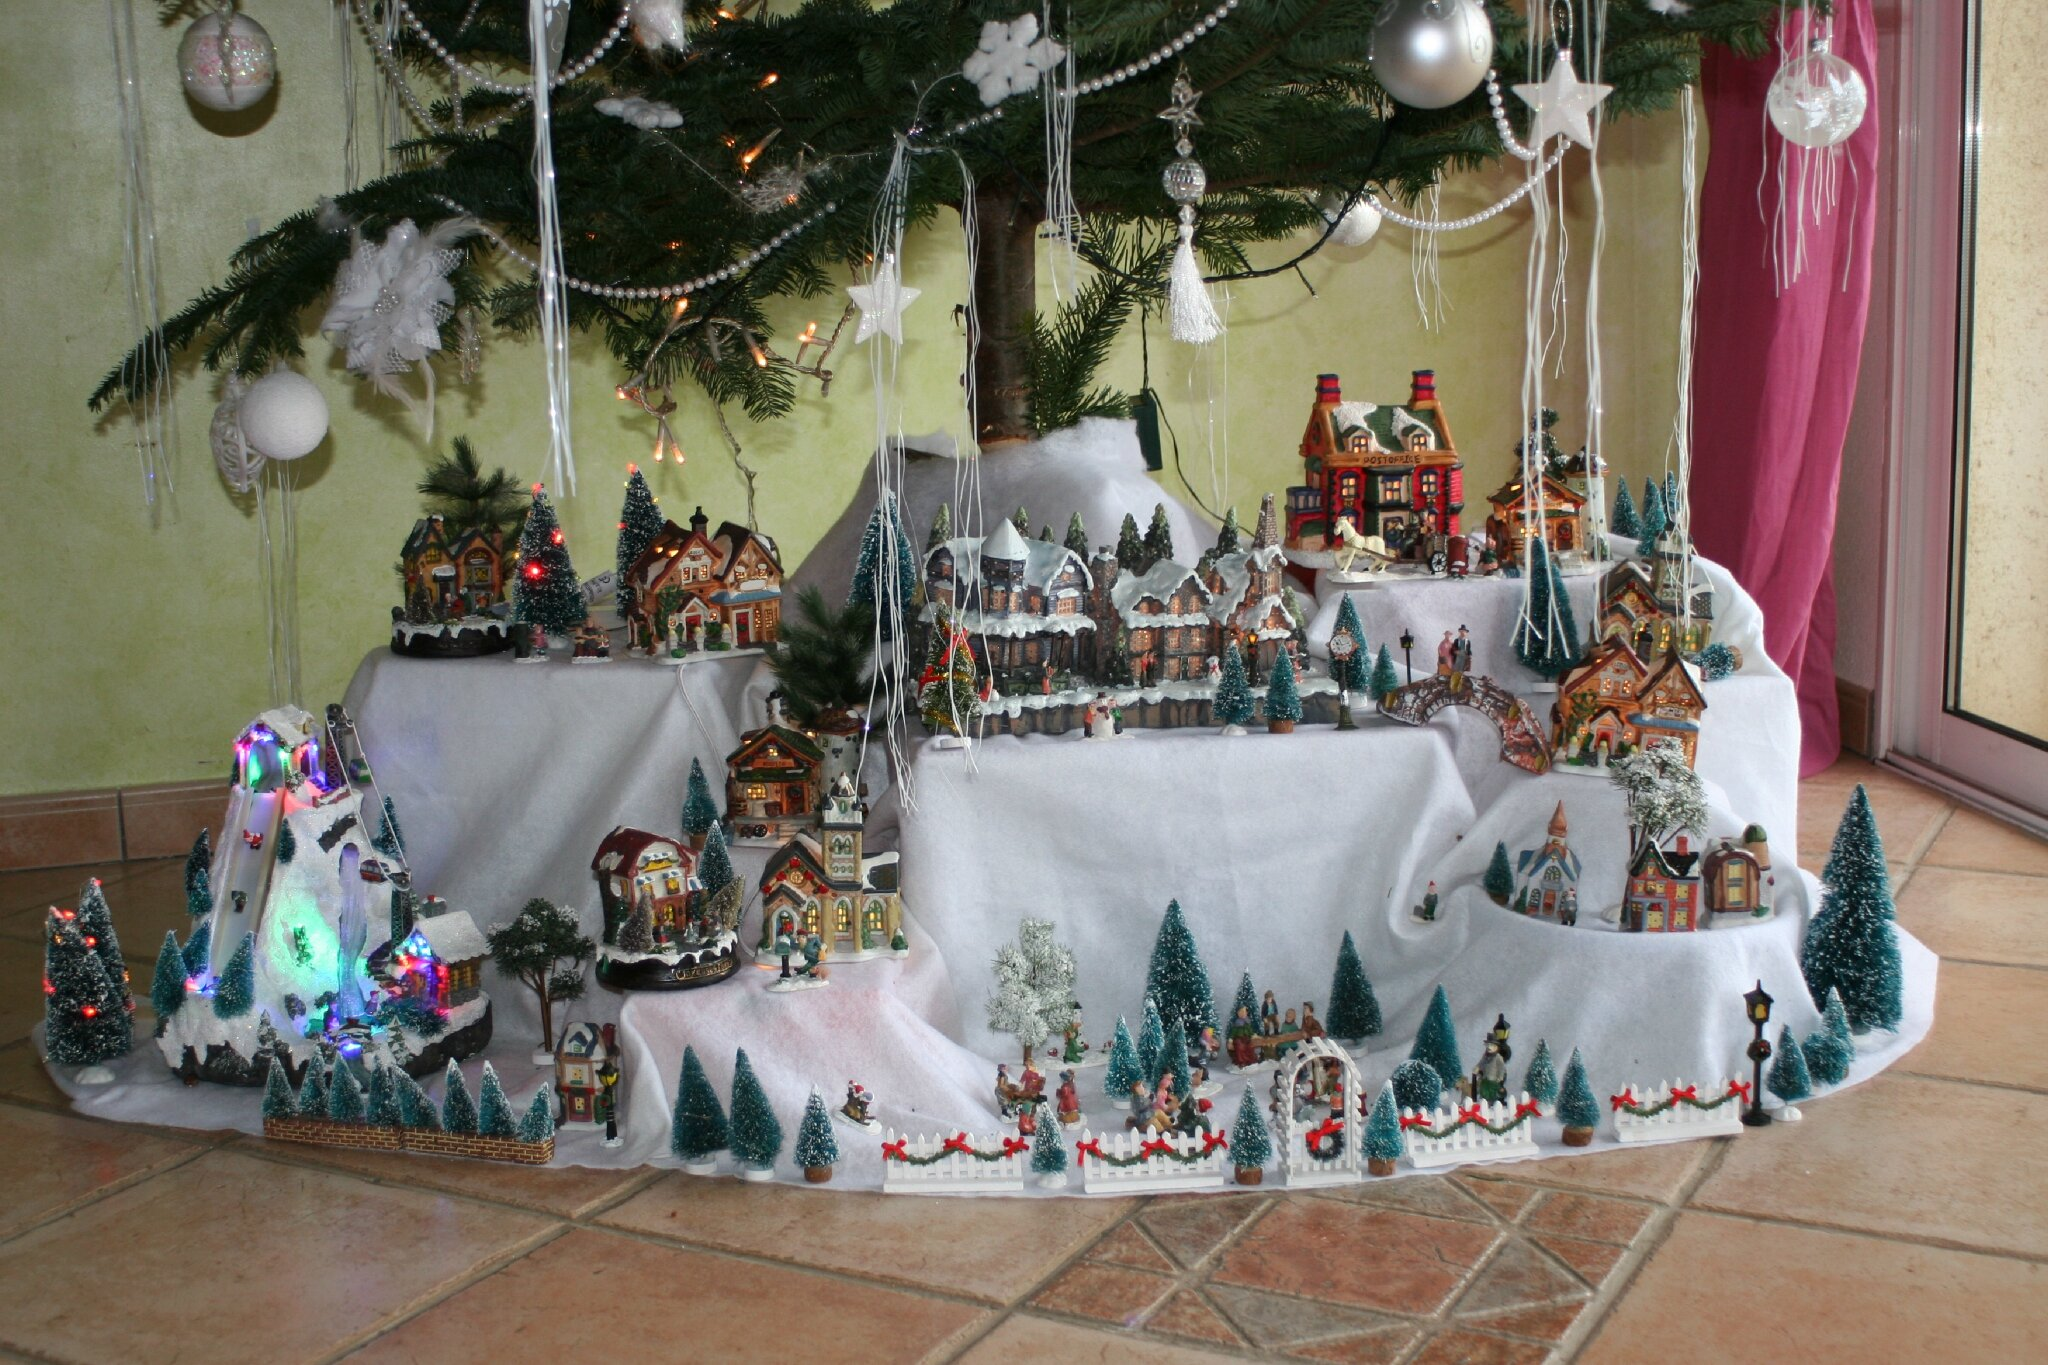 Village De Noel Decoration Idee Decoration Village De Noel